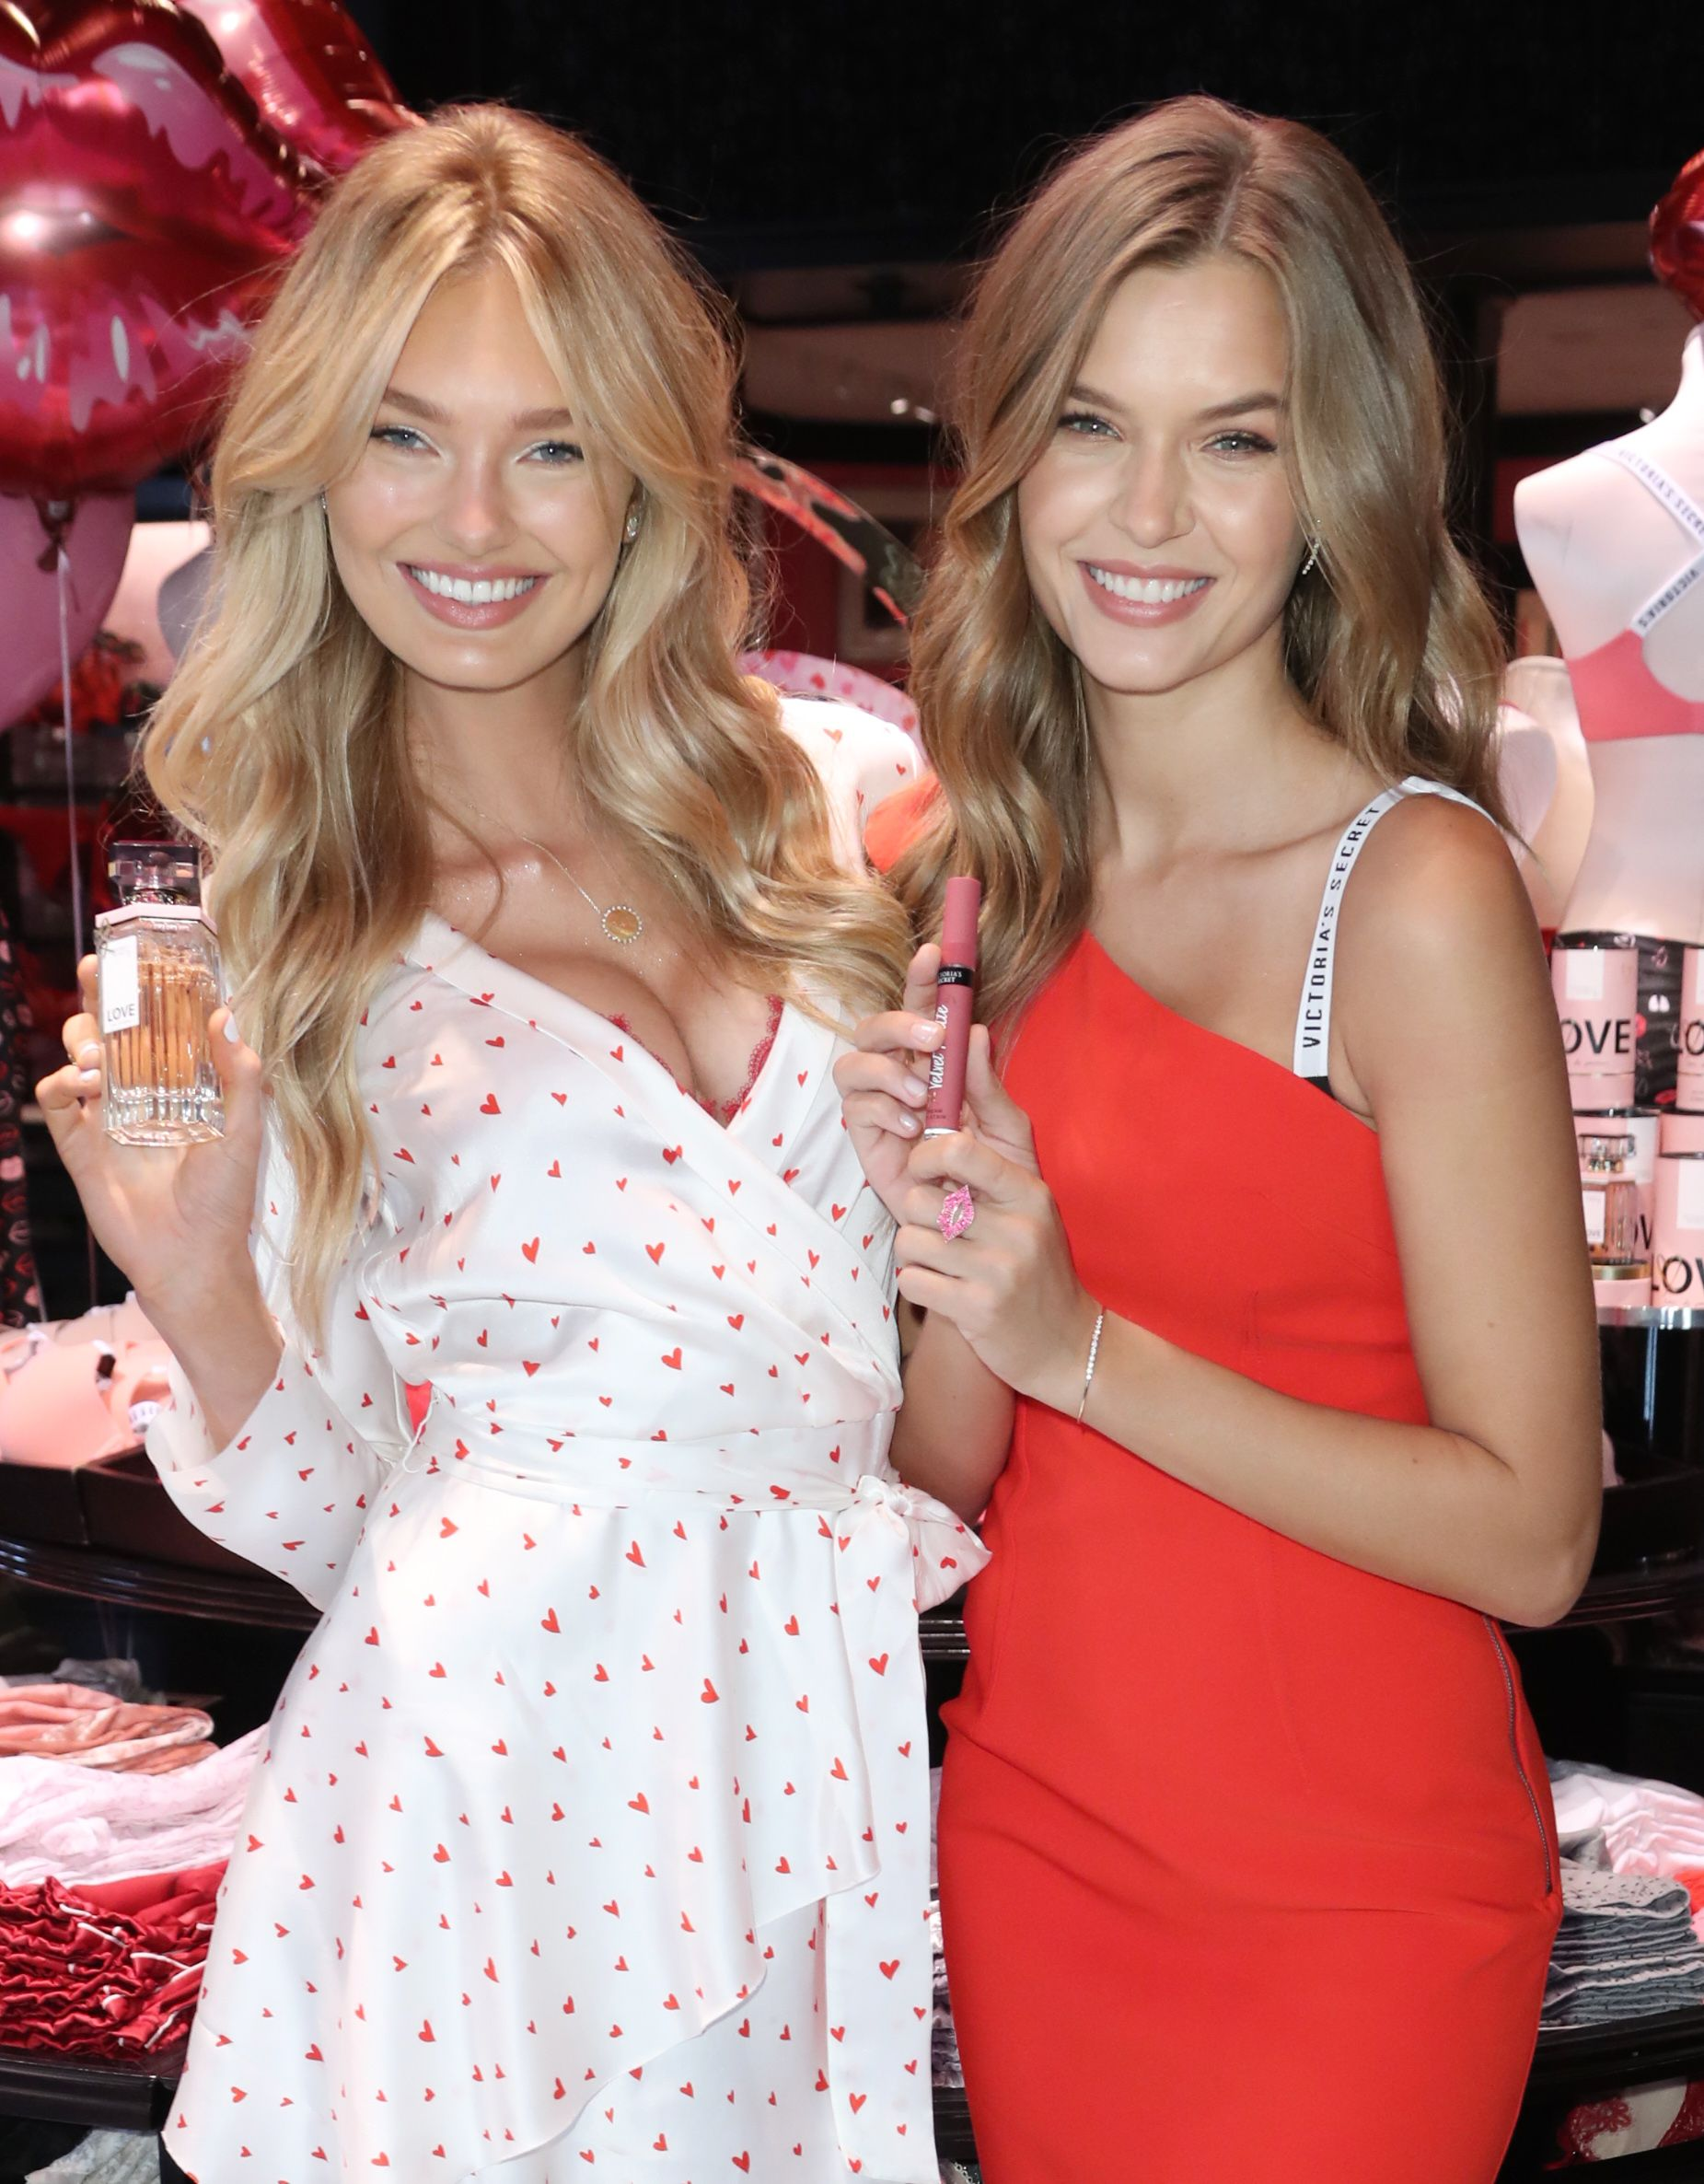 Romee Strijd and Josephine SkriverVictoria's Secret models at 3rd Street Promenade store, Los Angeles, USA - 06 Feb 2018